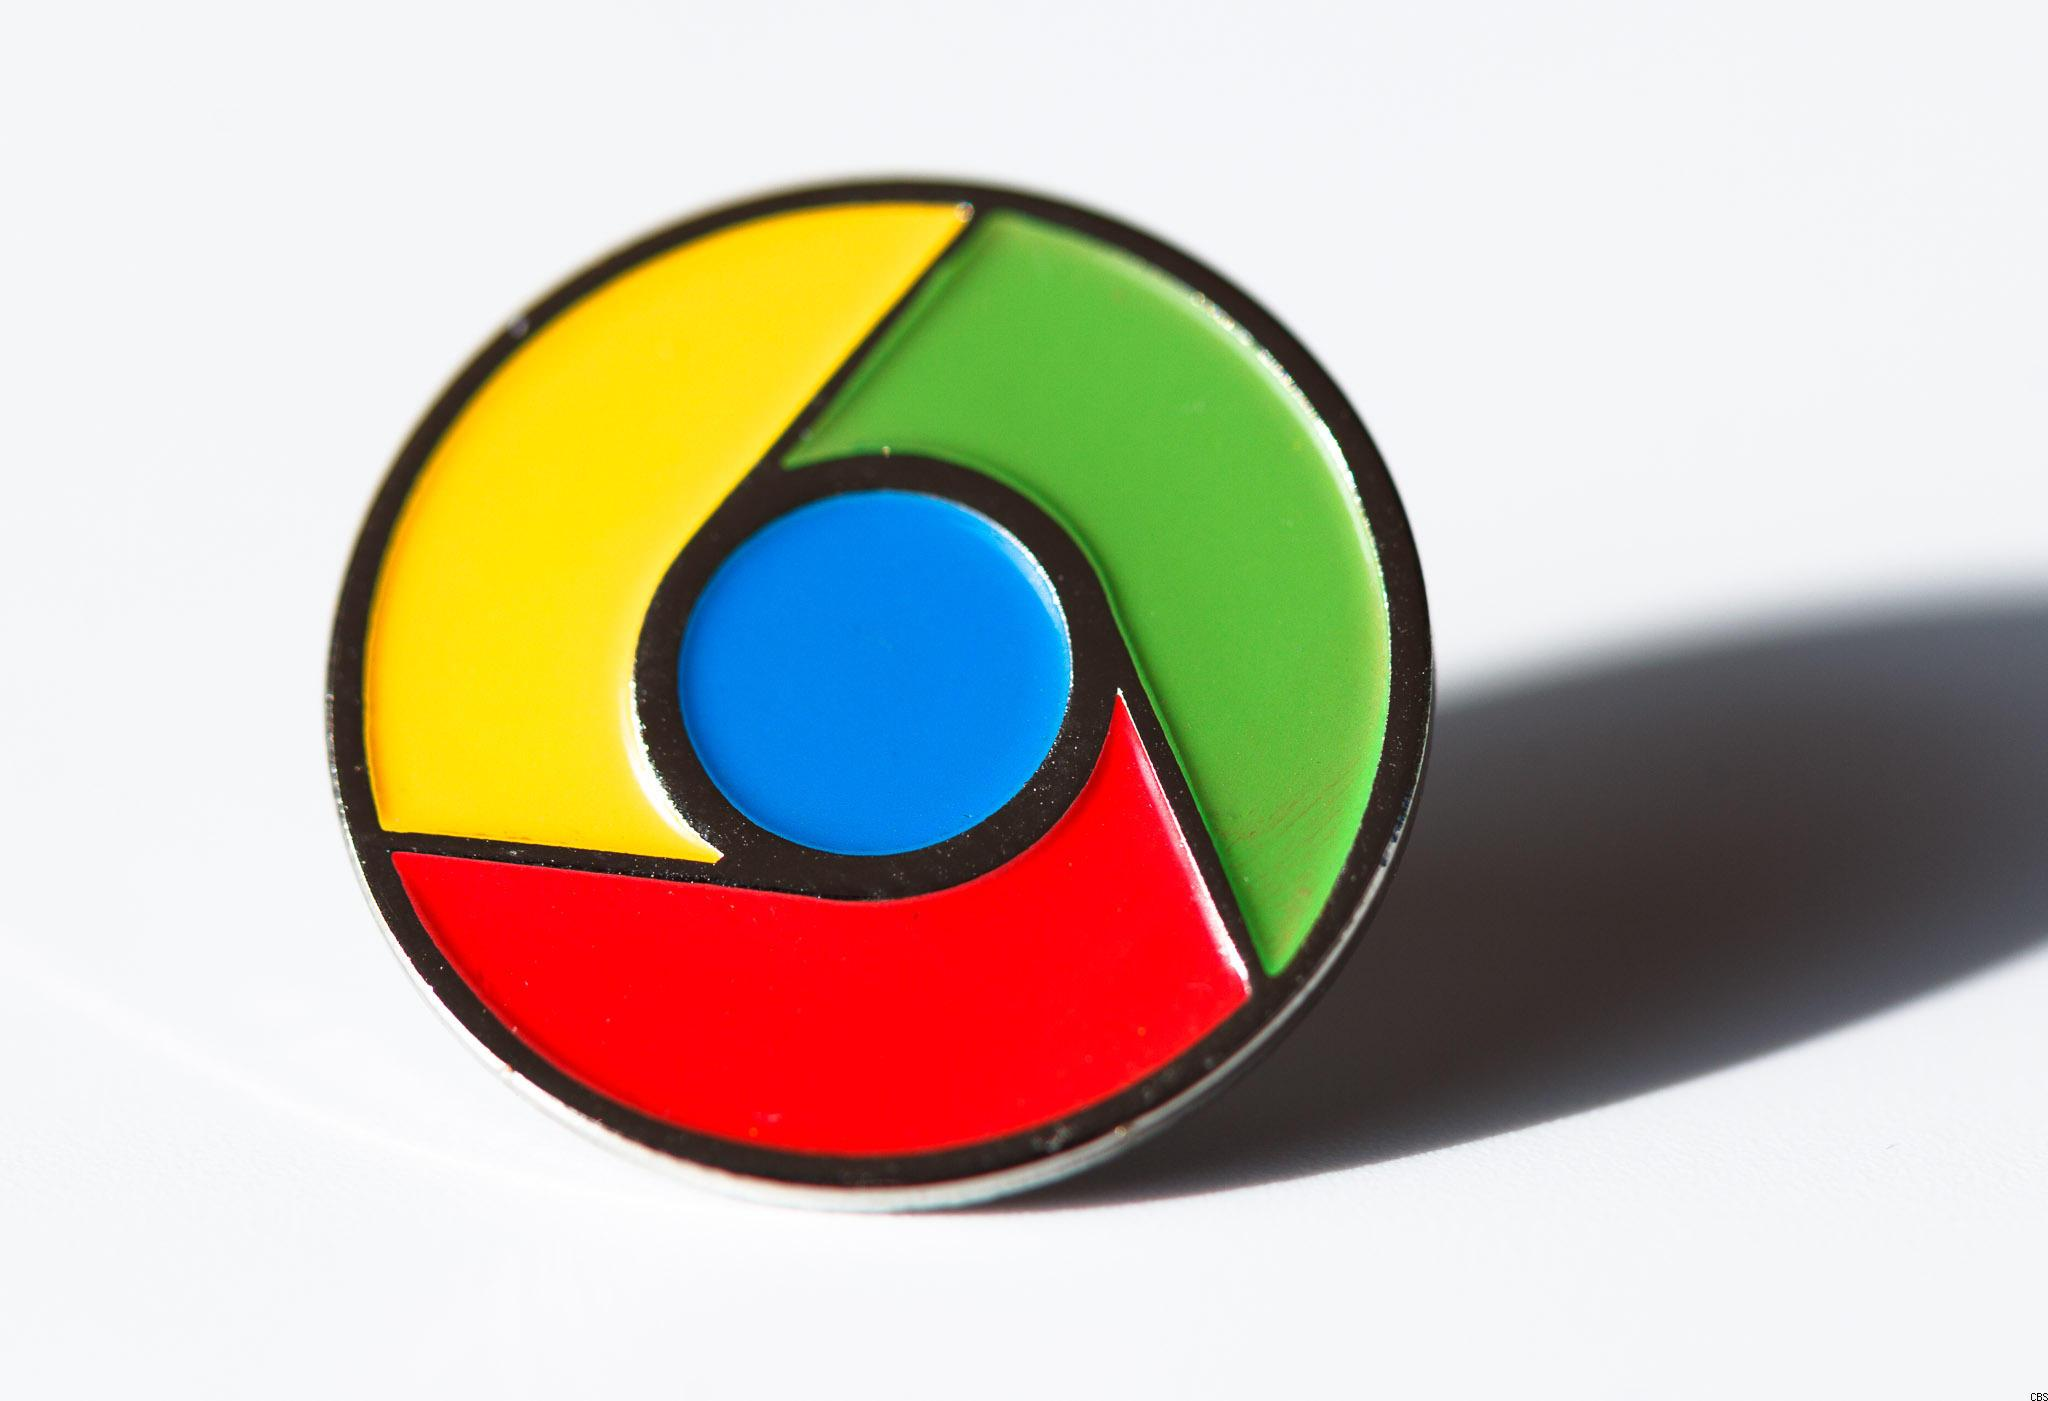 Be warned: Google enlists Chrome in push for encrypted Web